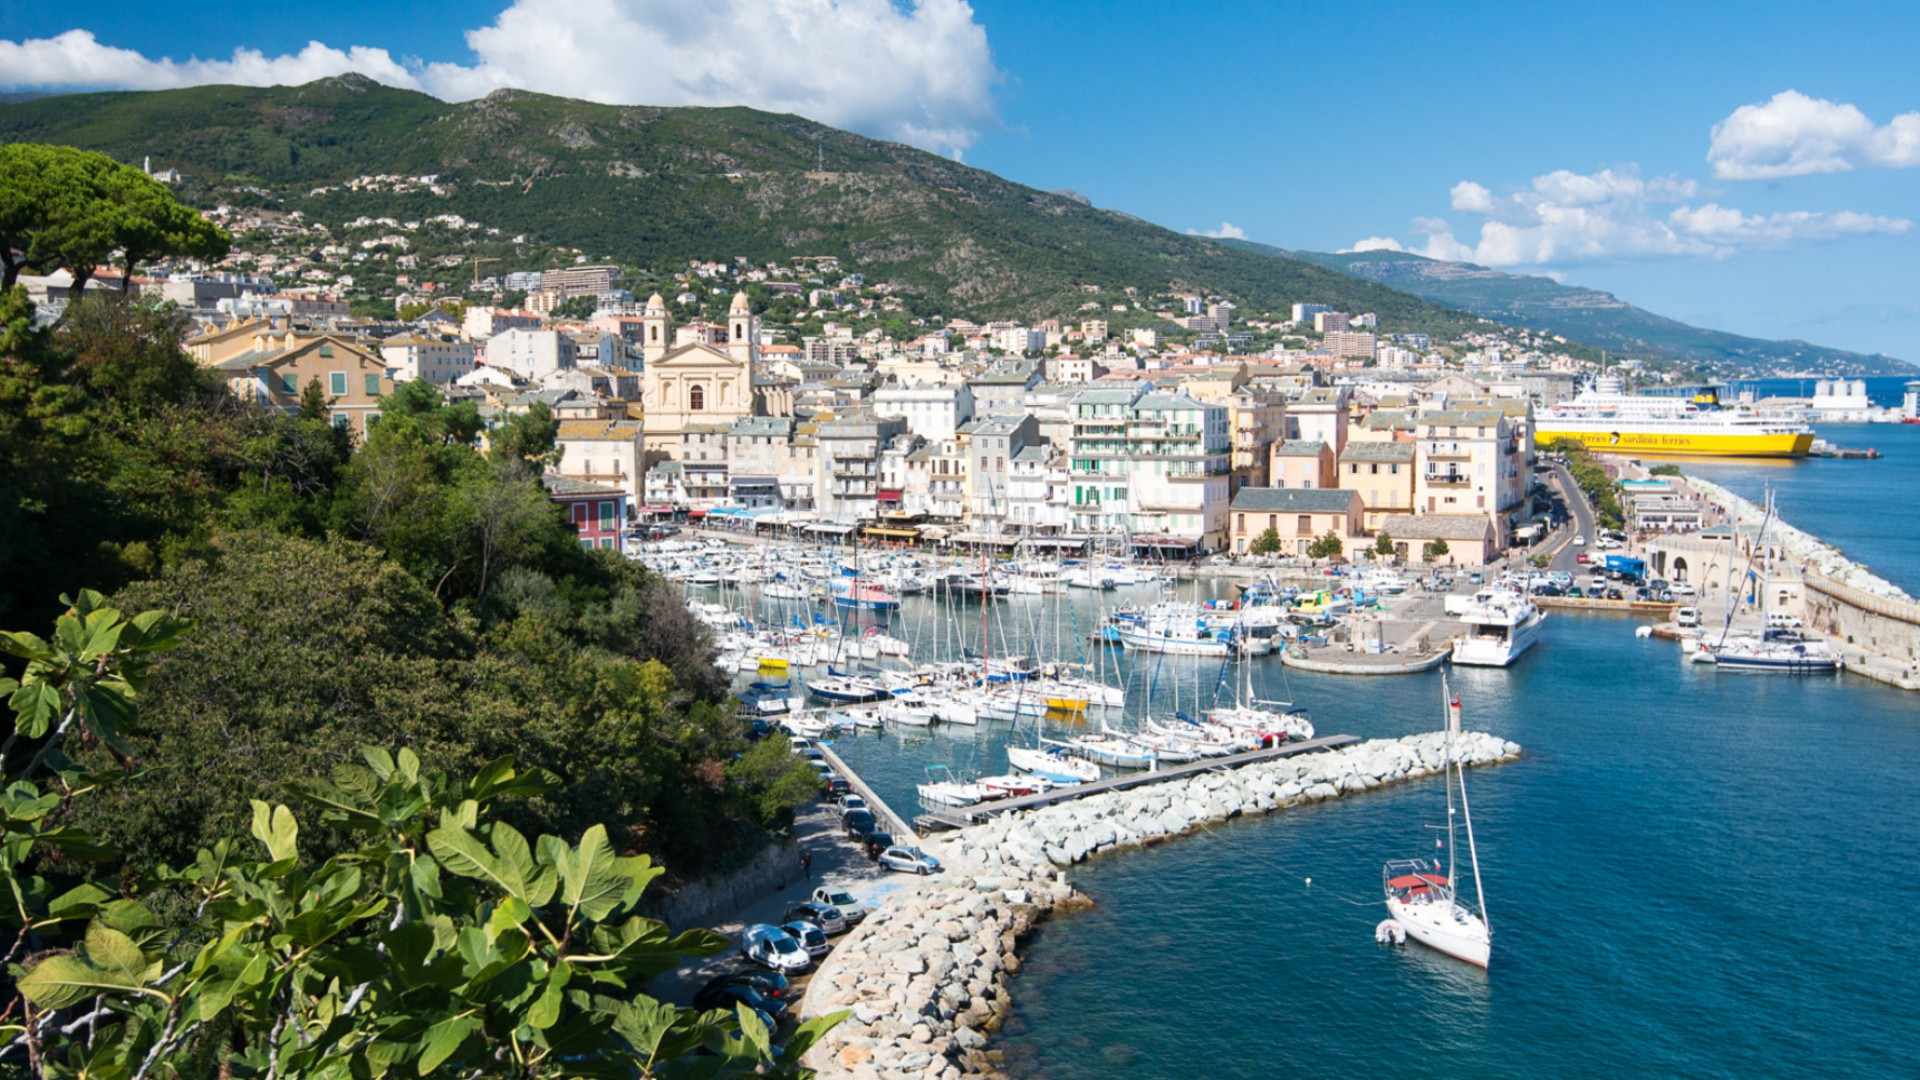 coastline of Corsica with buildings and water